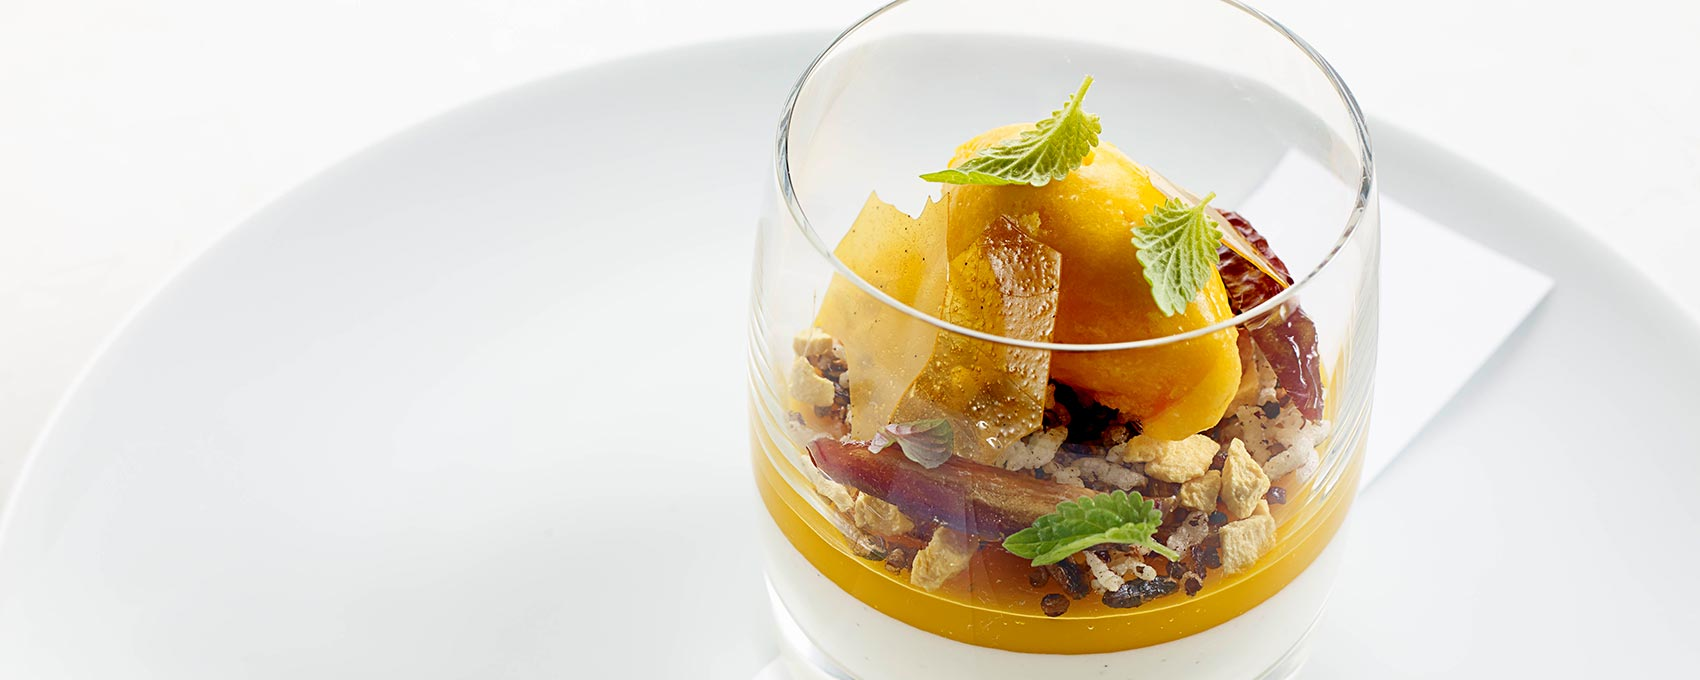 Hawksworth-Restaurant-Passionfruit-Cup-home